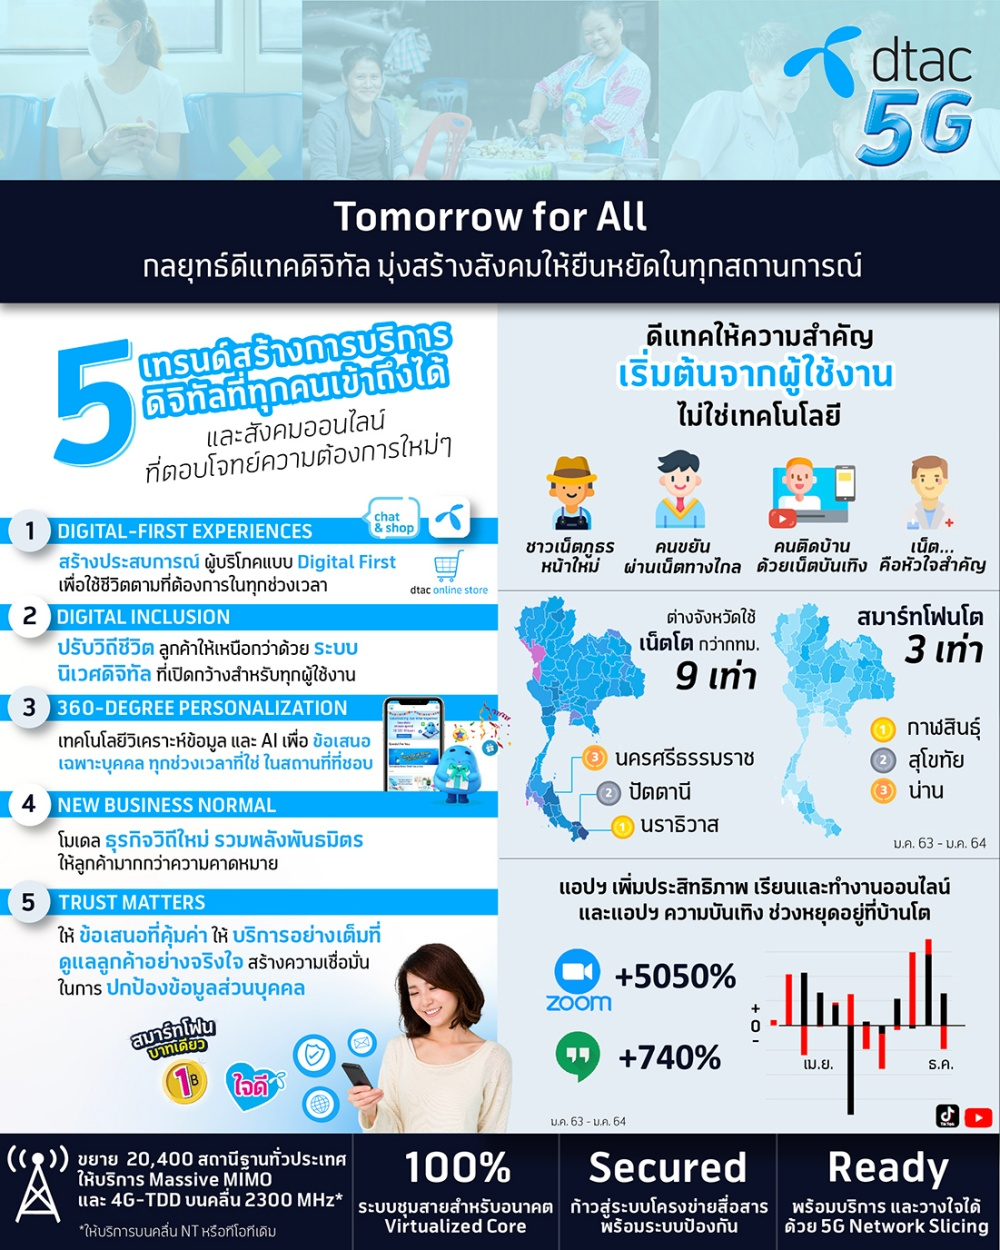 dtac-tomorrow-for-all_-1